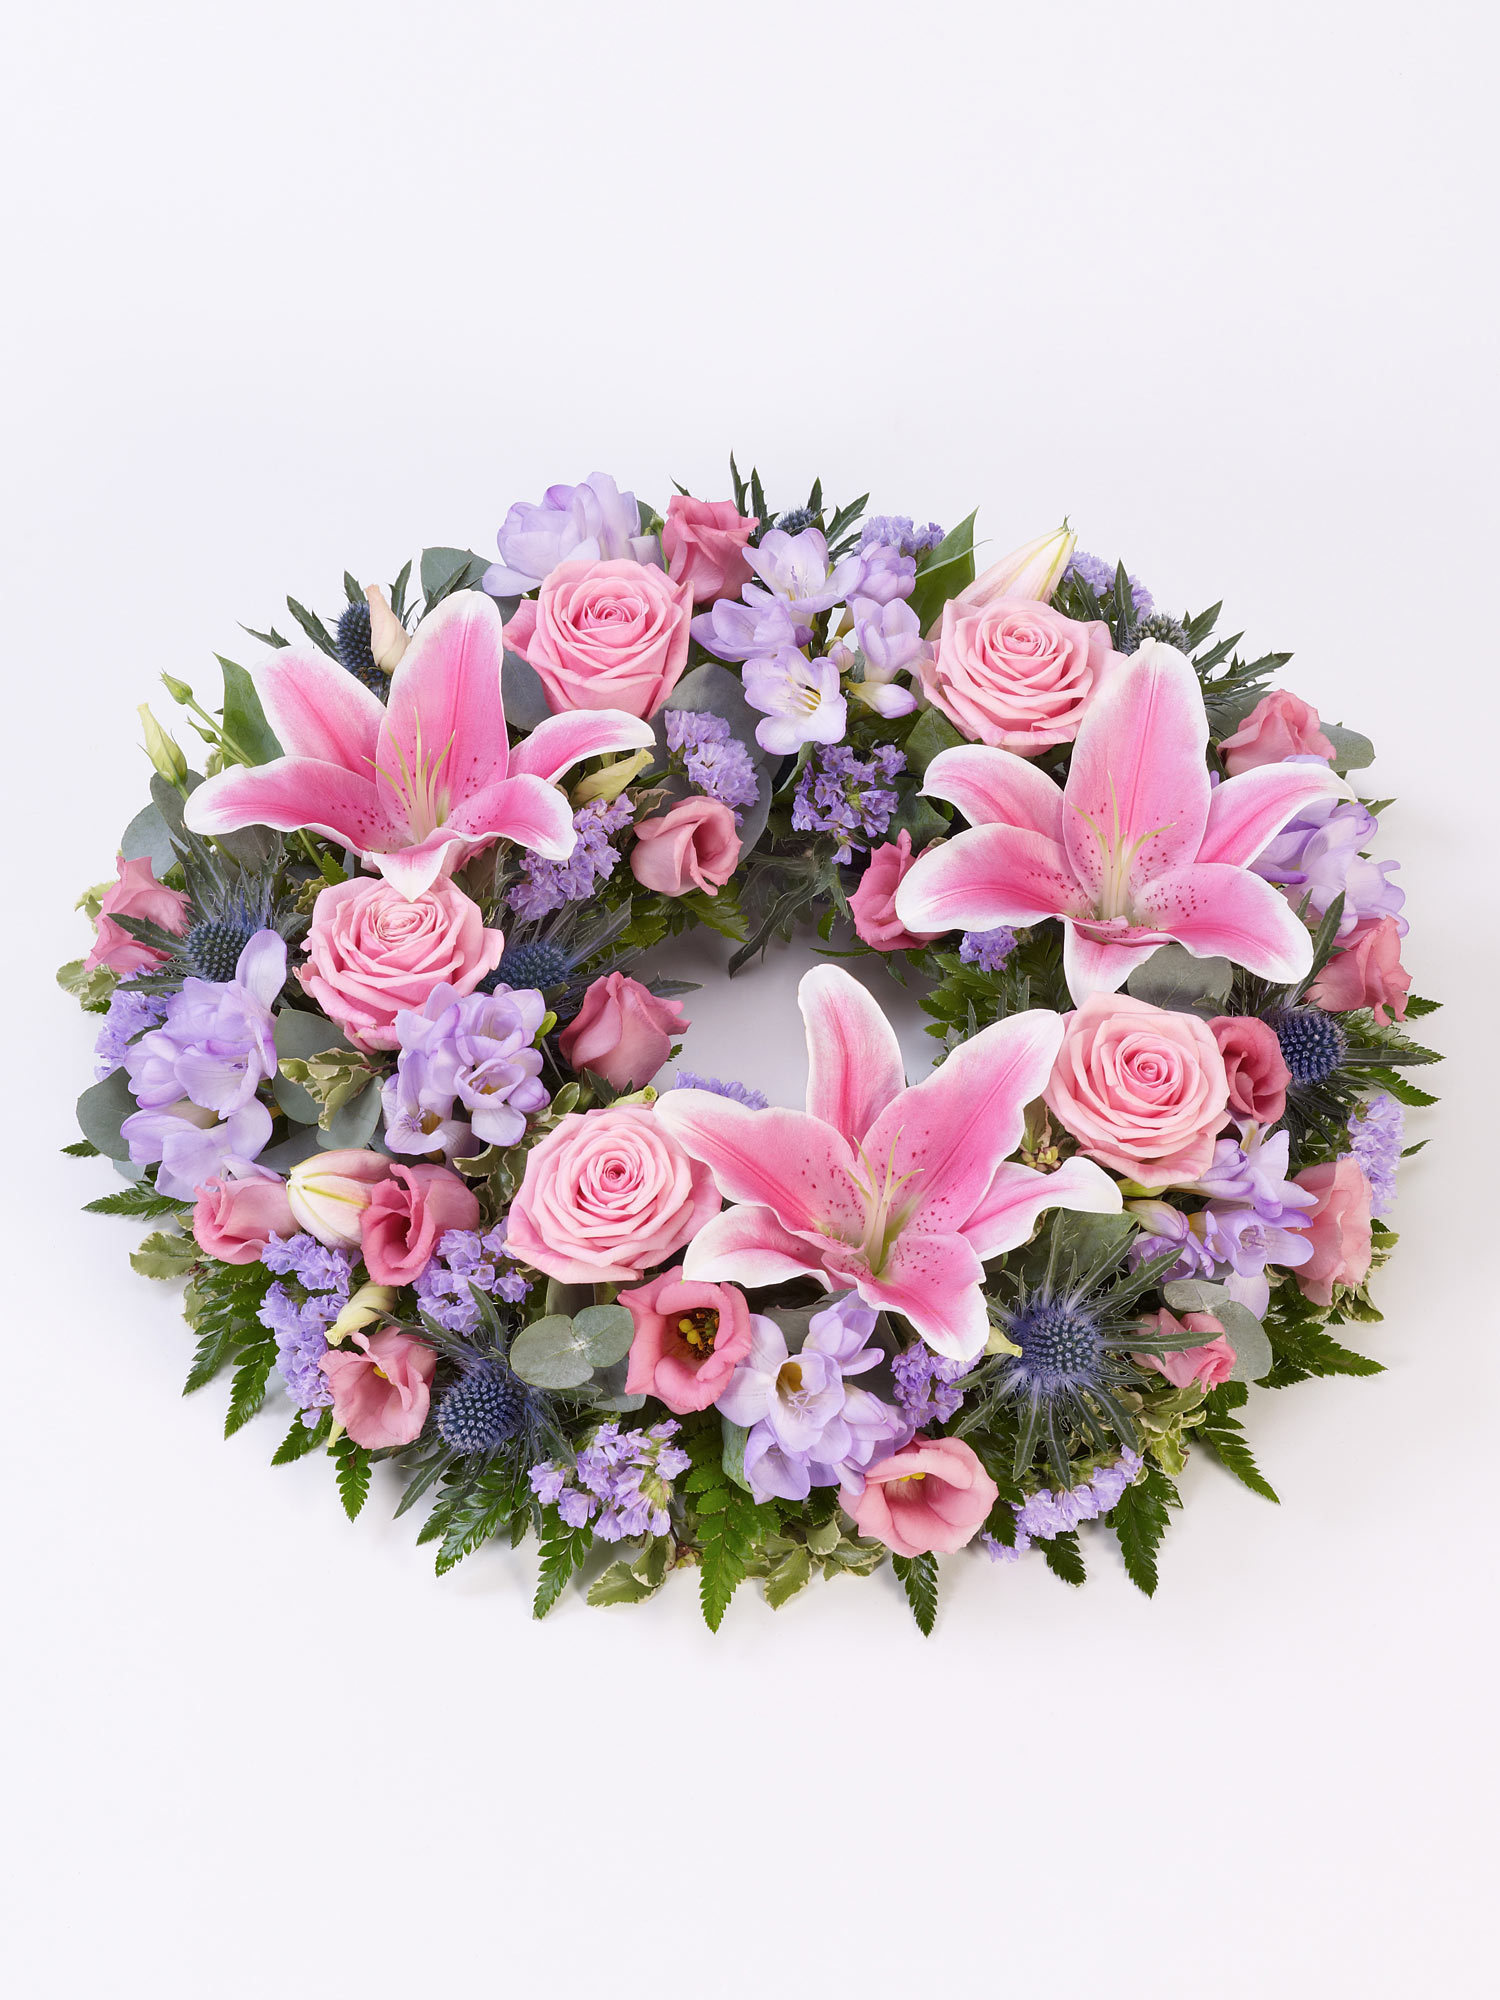 A floral wreath used as a tribute